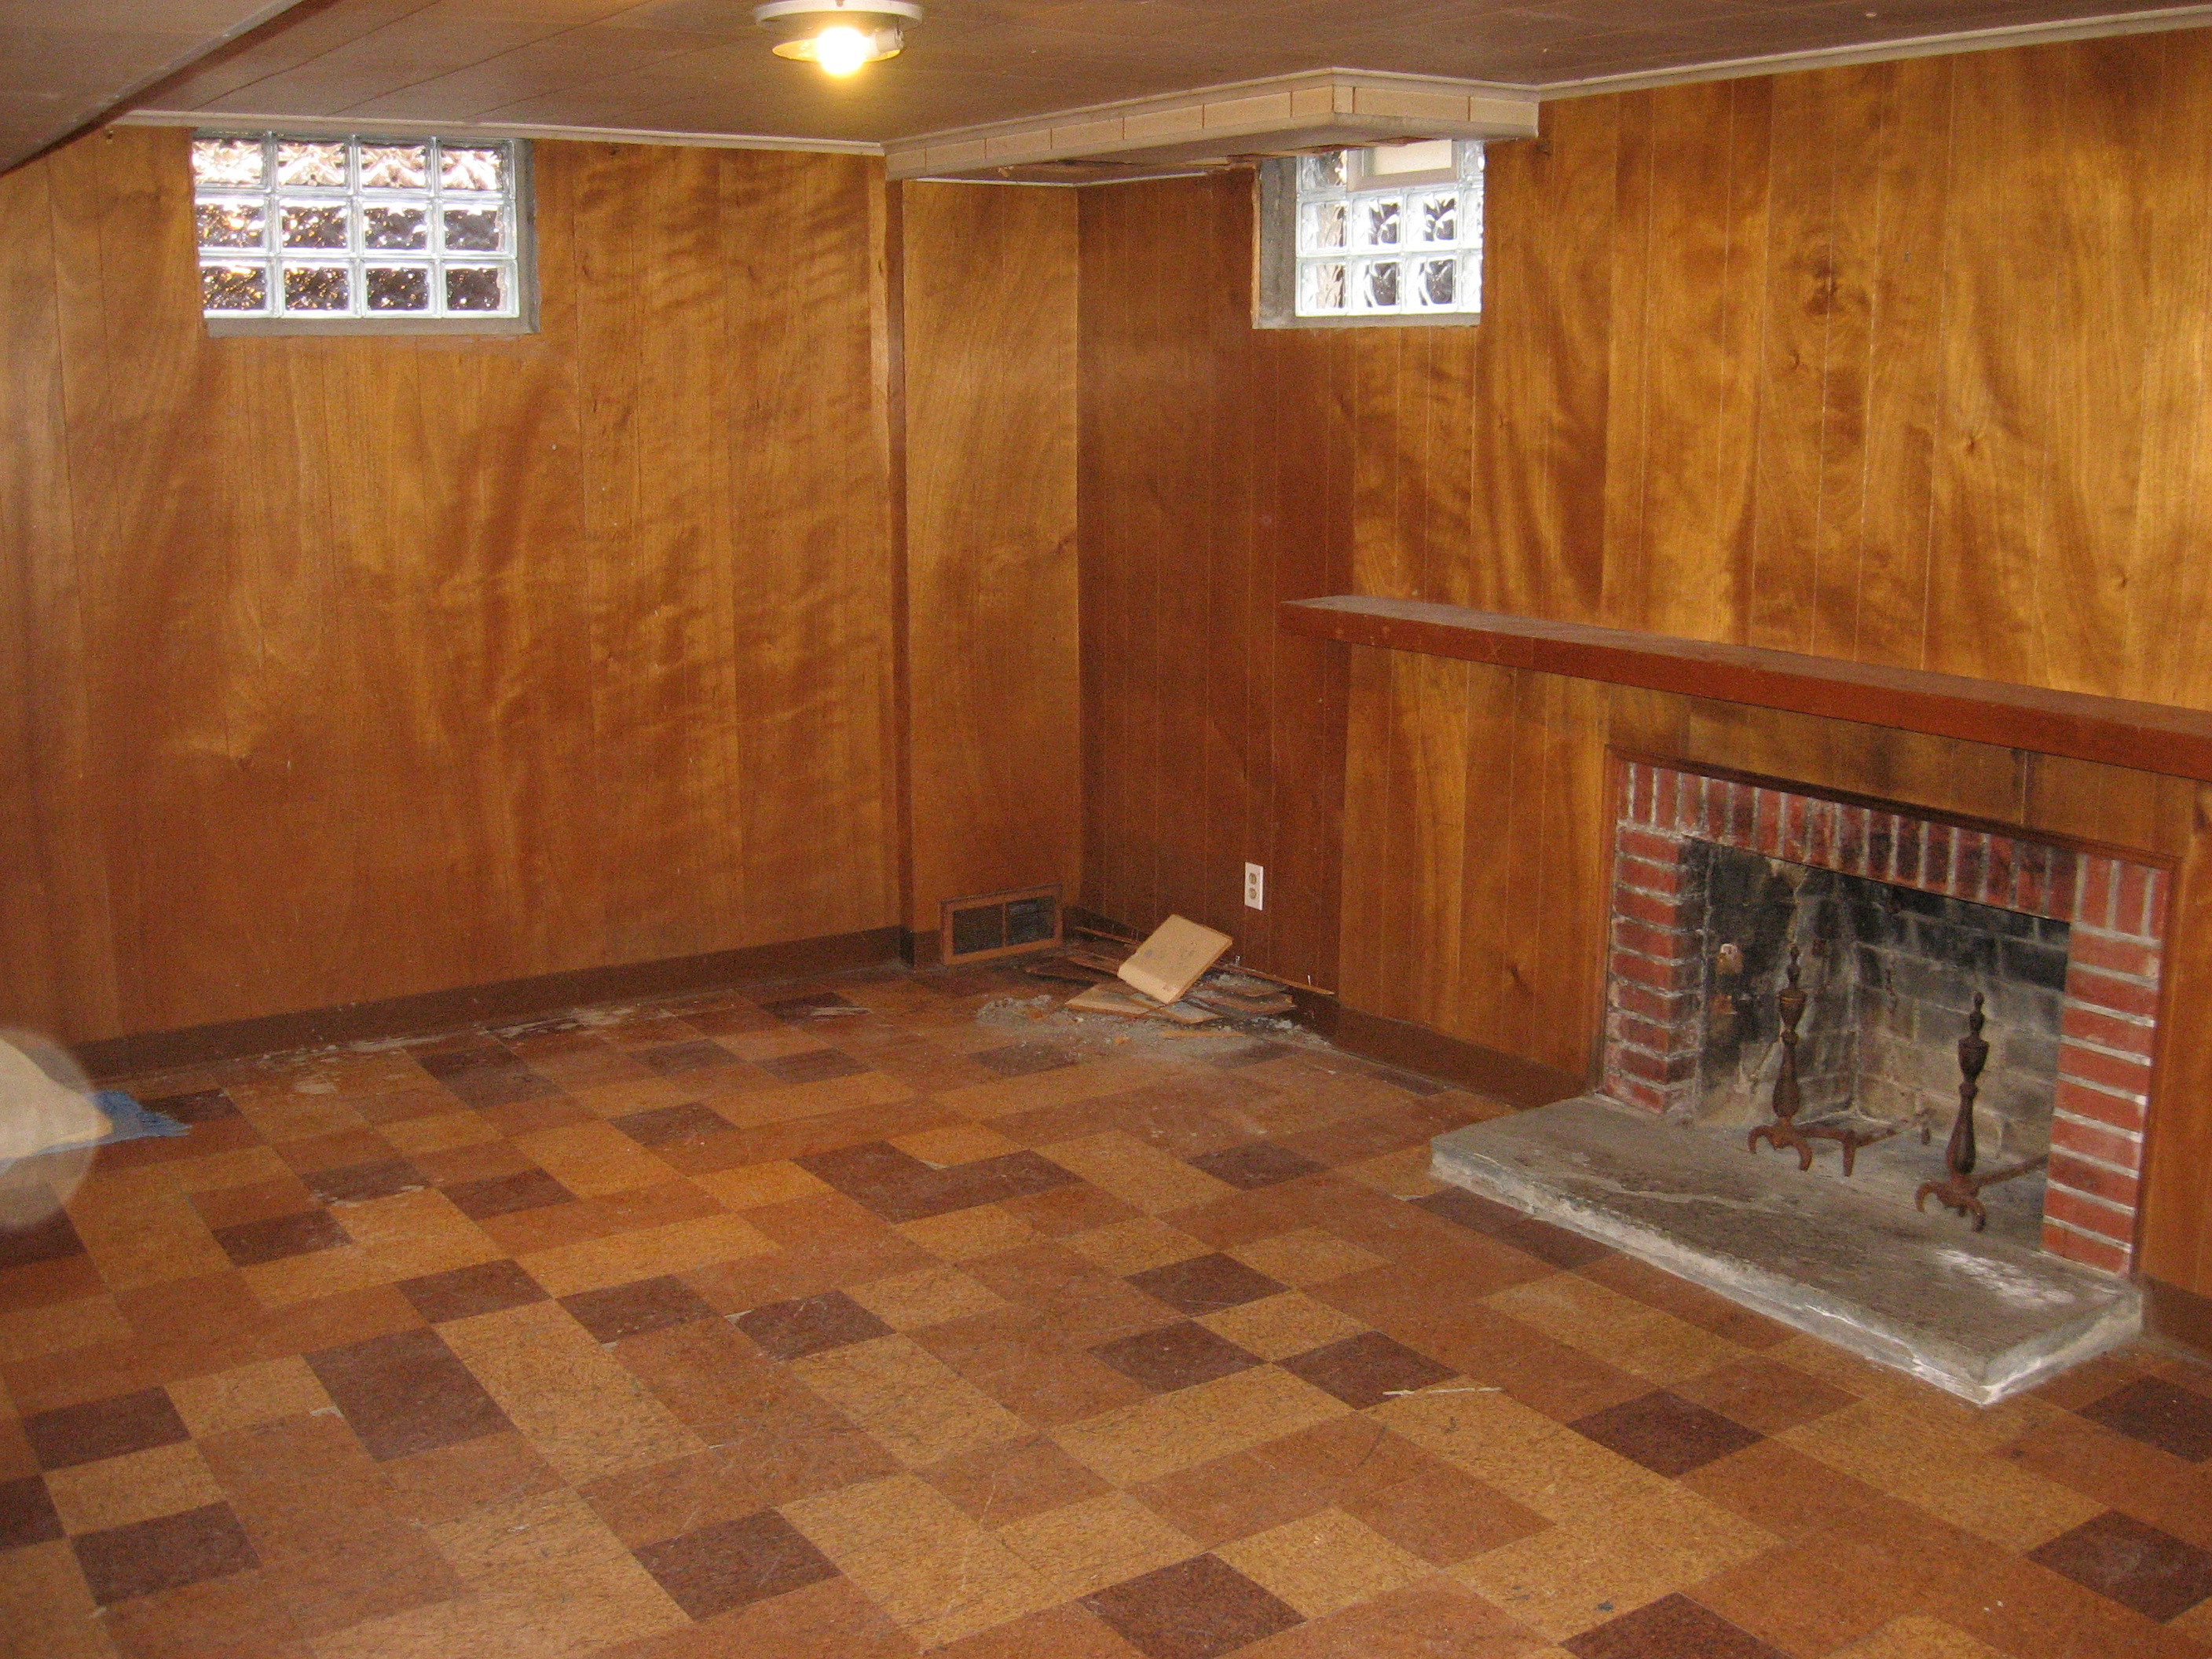 Outdated basement prior to demolition